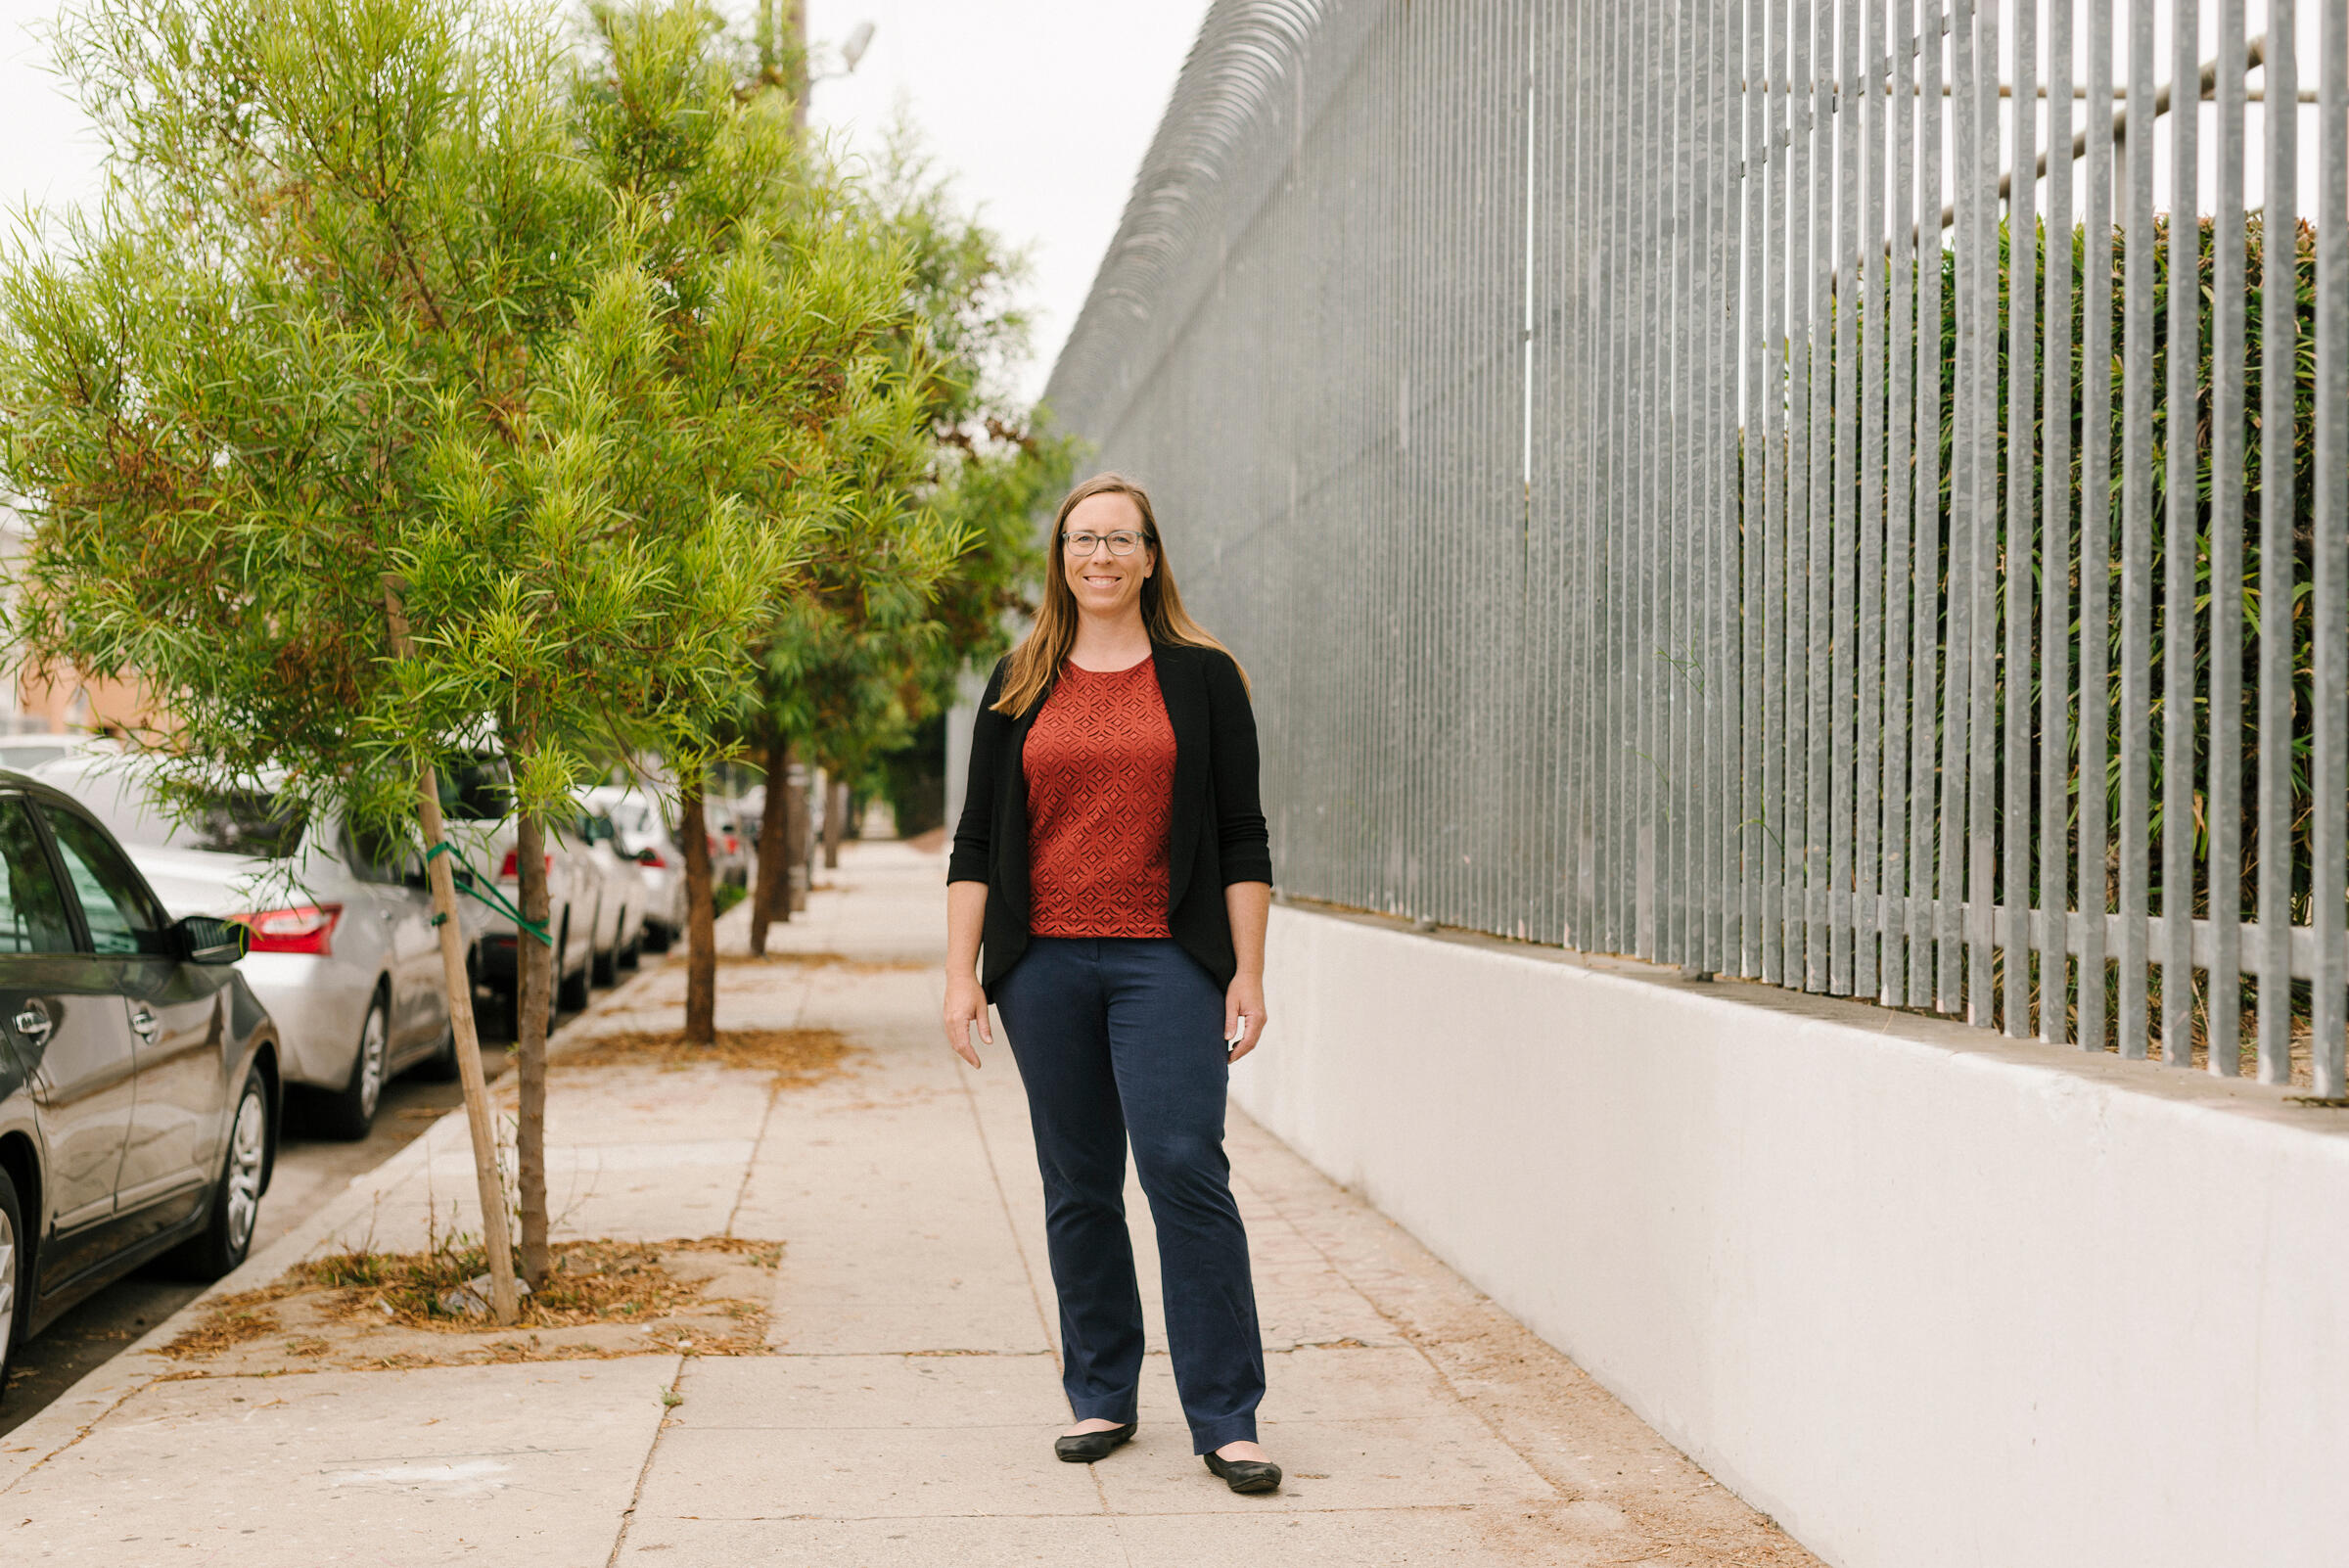 Rachel Malarich is the first-ever City Forest Officer of Los Angeles. Carmen Chan